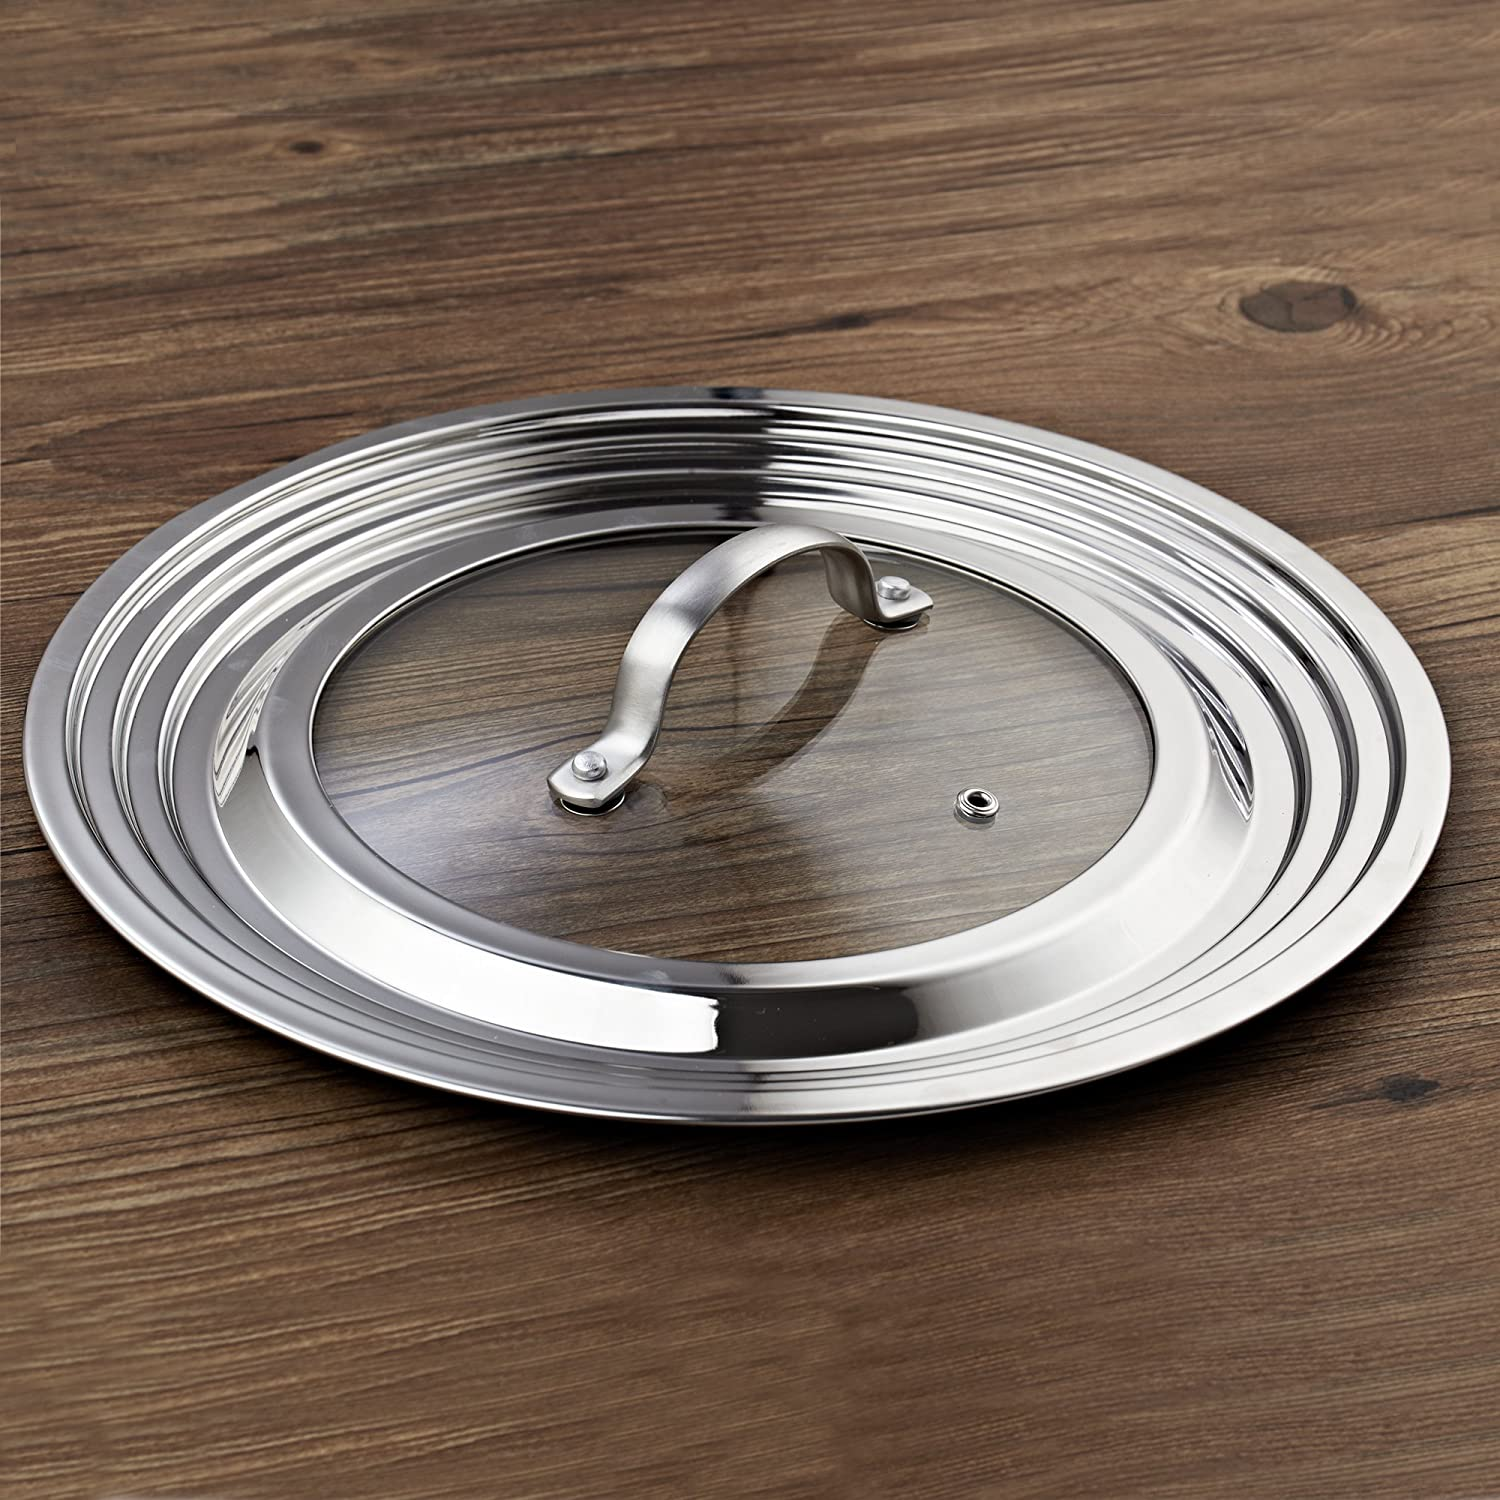 and 12-Inch 02528 Cook N Home Stainless Steel with Glass Center Universal Lid Fits 8 10.25 11